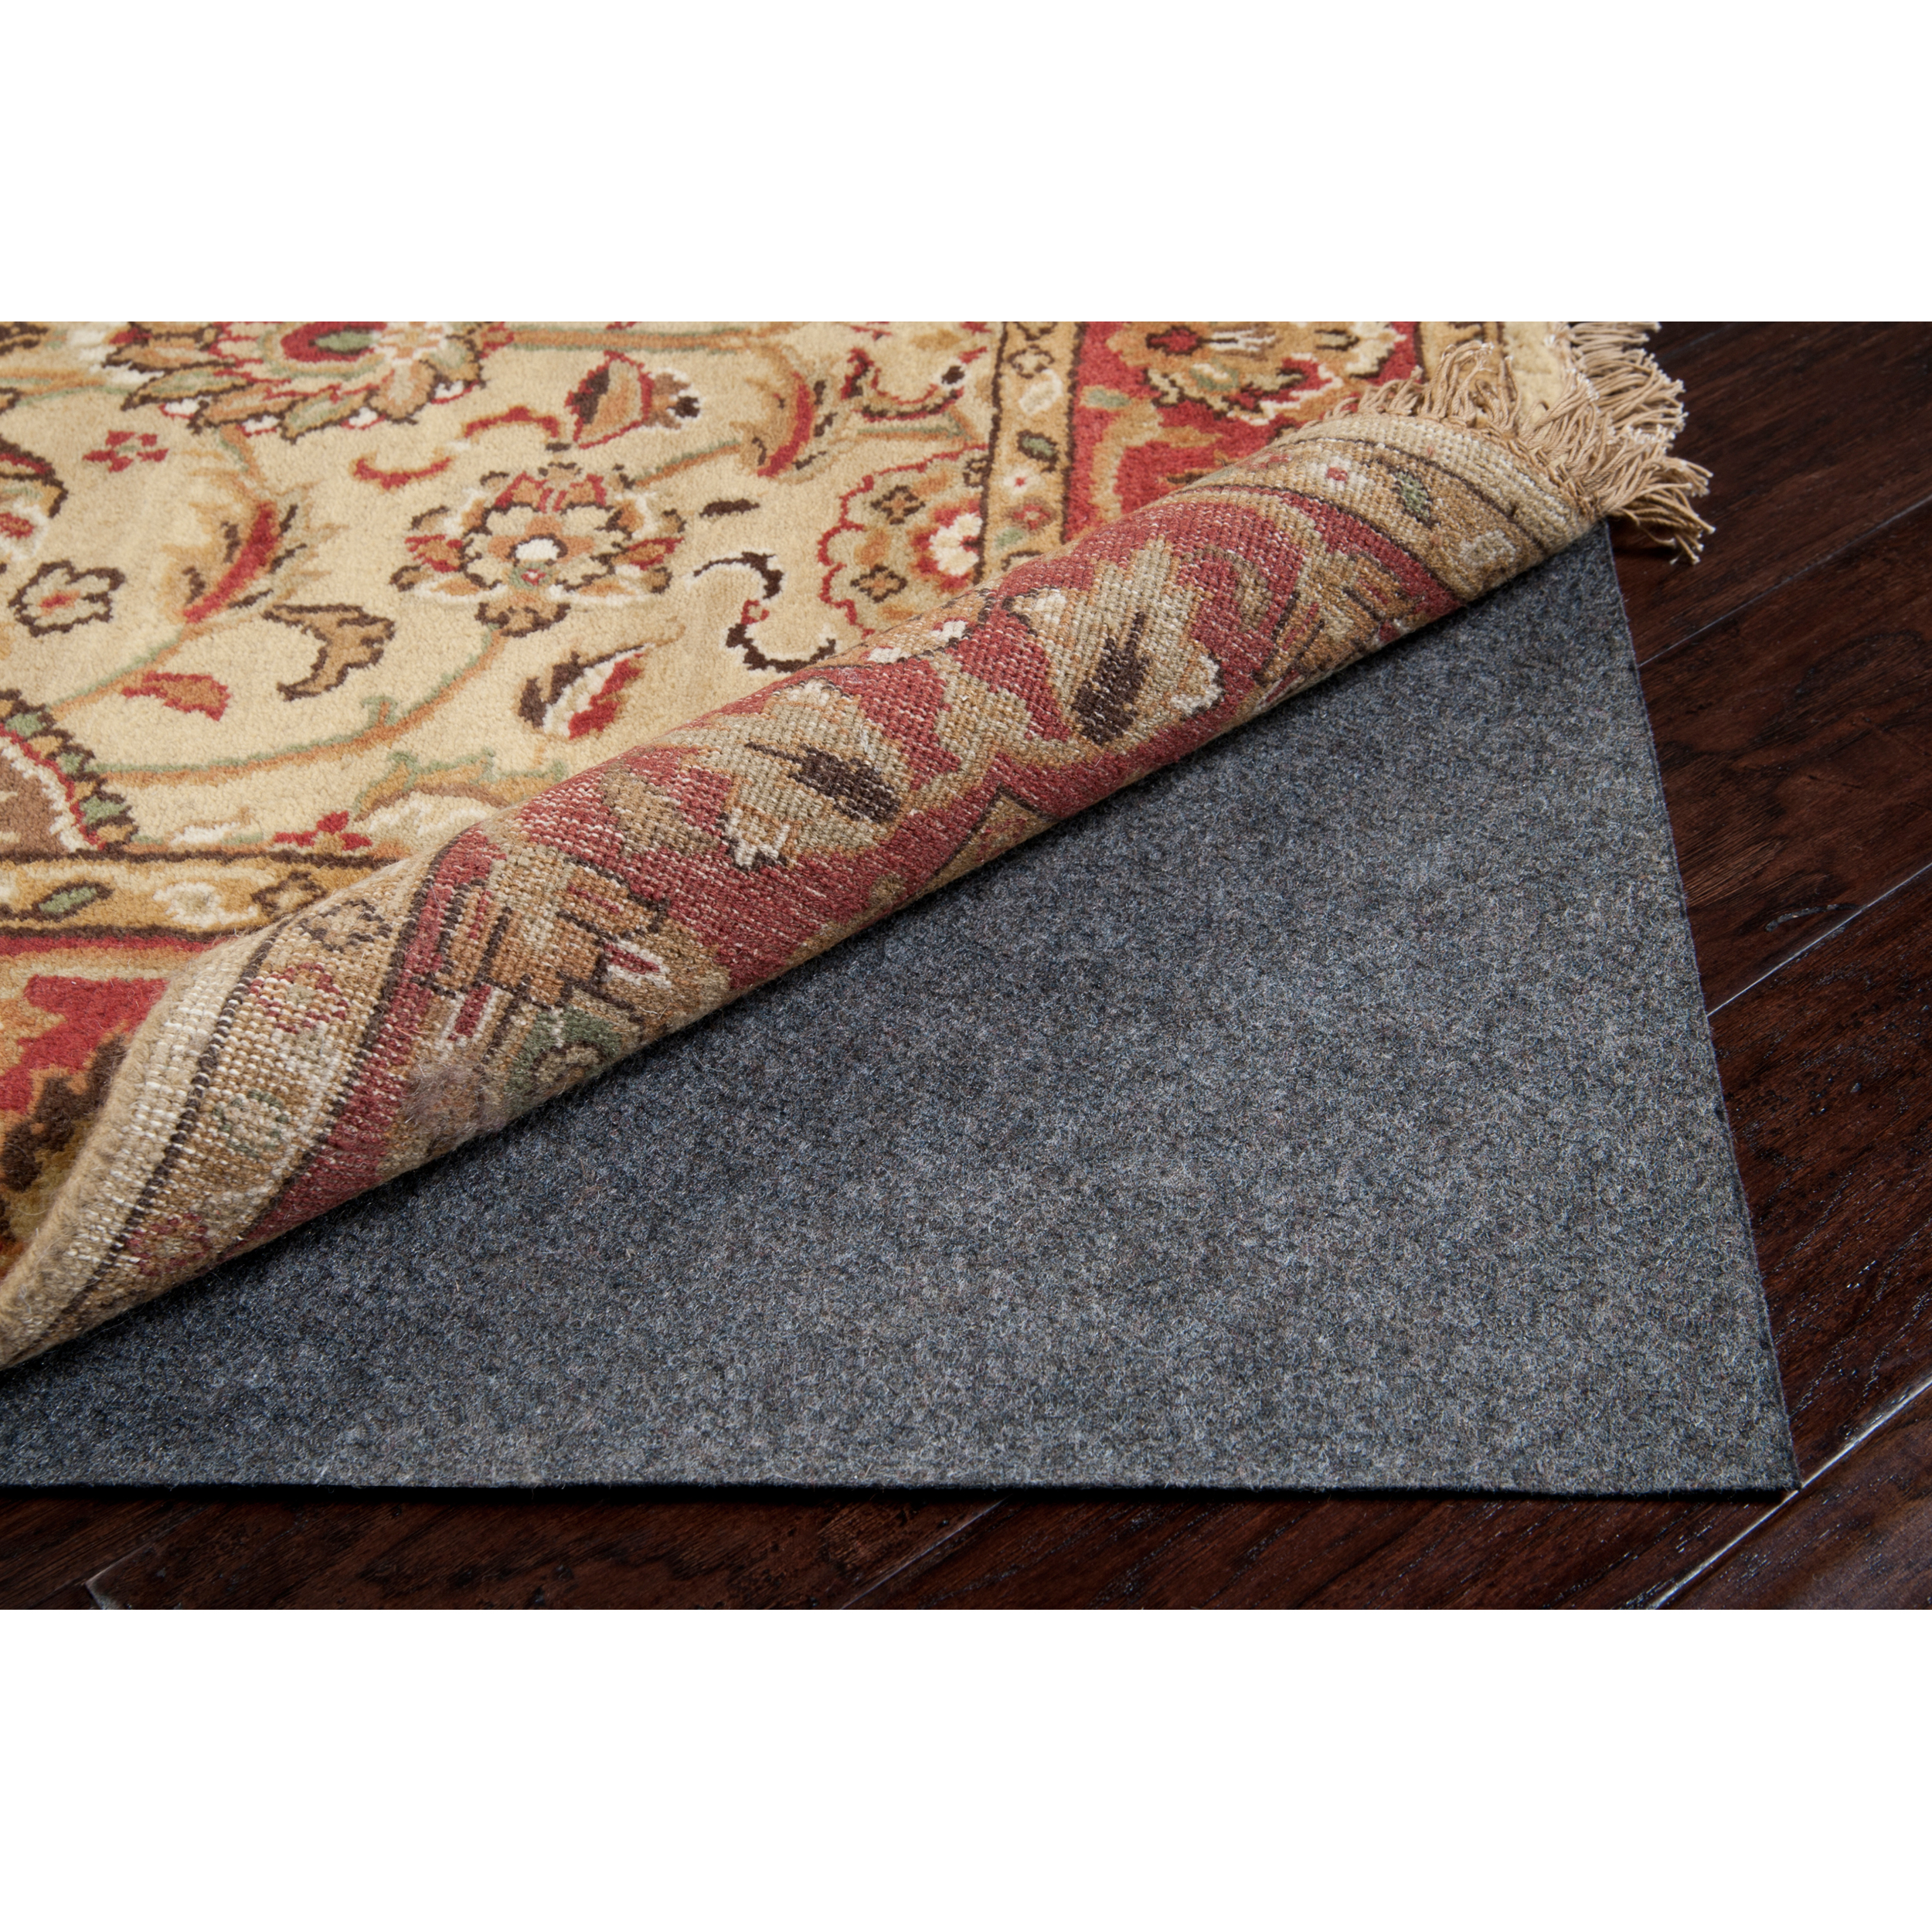 Turkish Rug Pad Rug Pad Felt Material Wood Flooring Rug Pads Solid Wood  Floor Rug